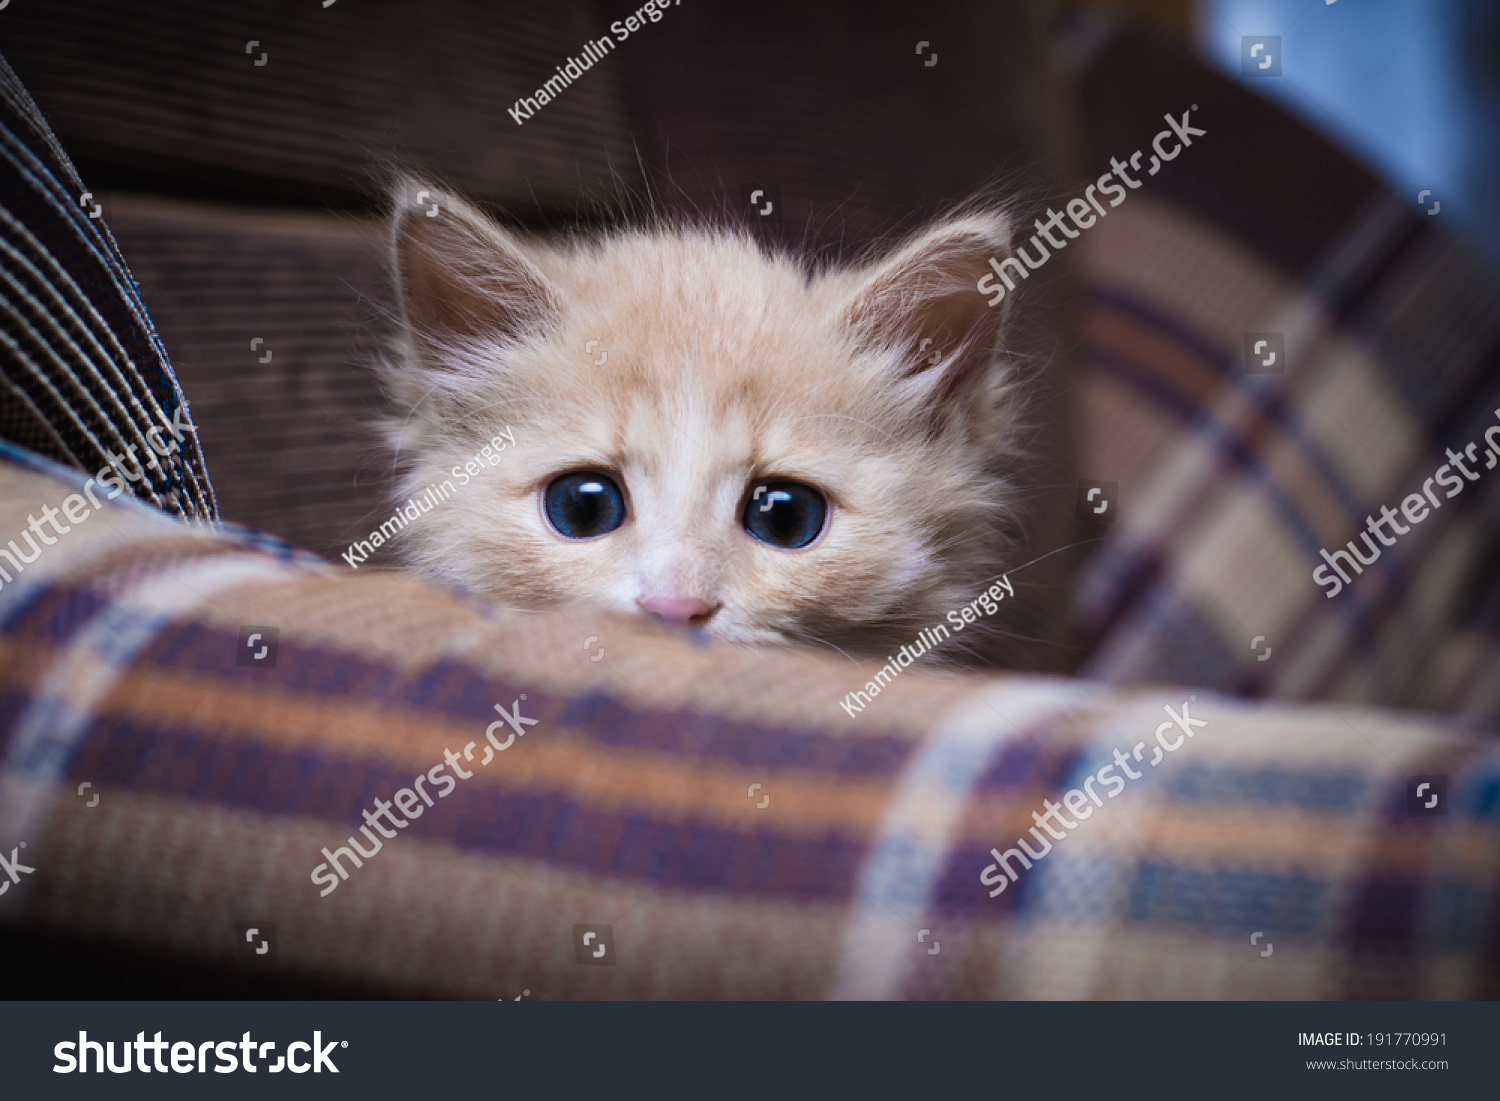 Scared Kitten Hiding Home Stock Photo 191770991 - ShutterstockScared Kitten Hiding